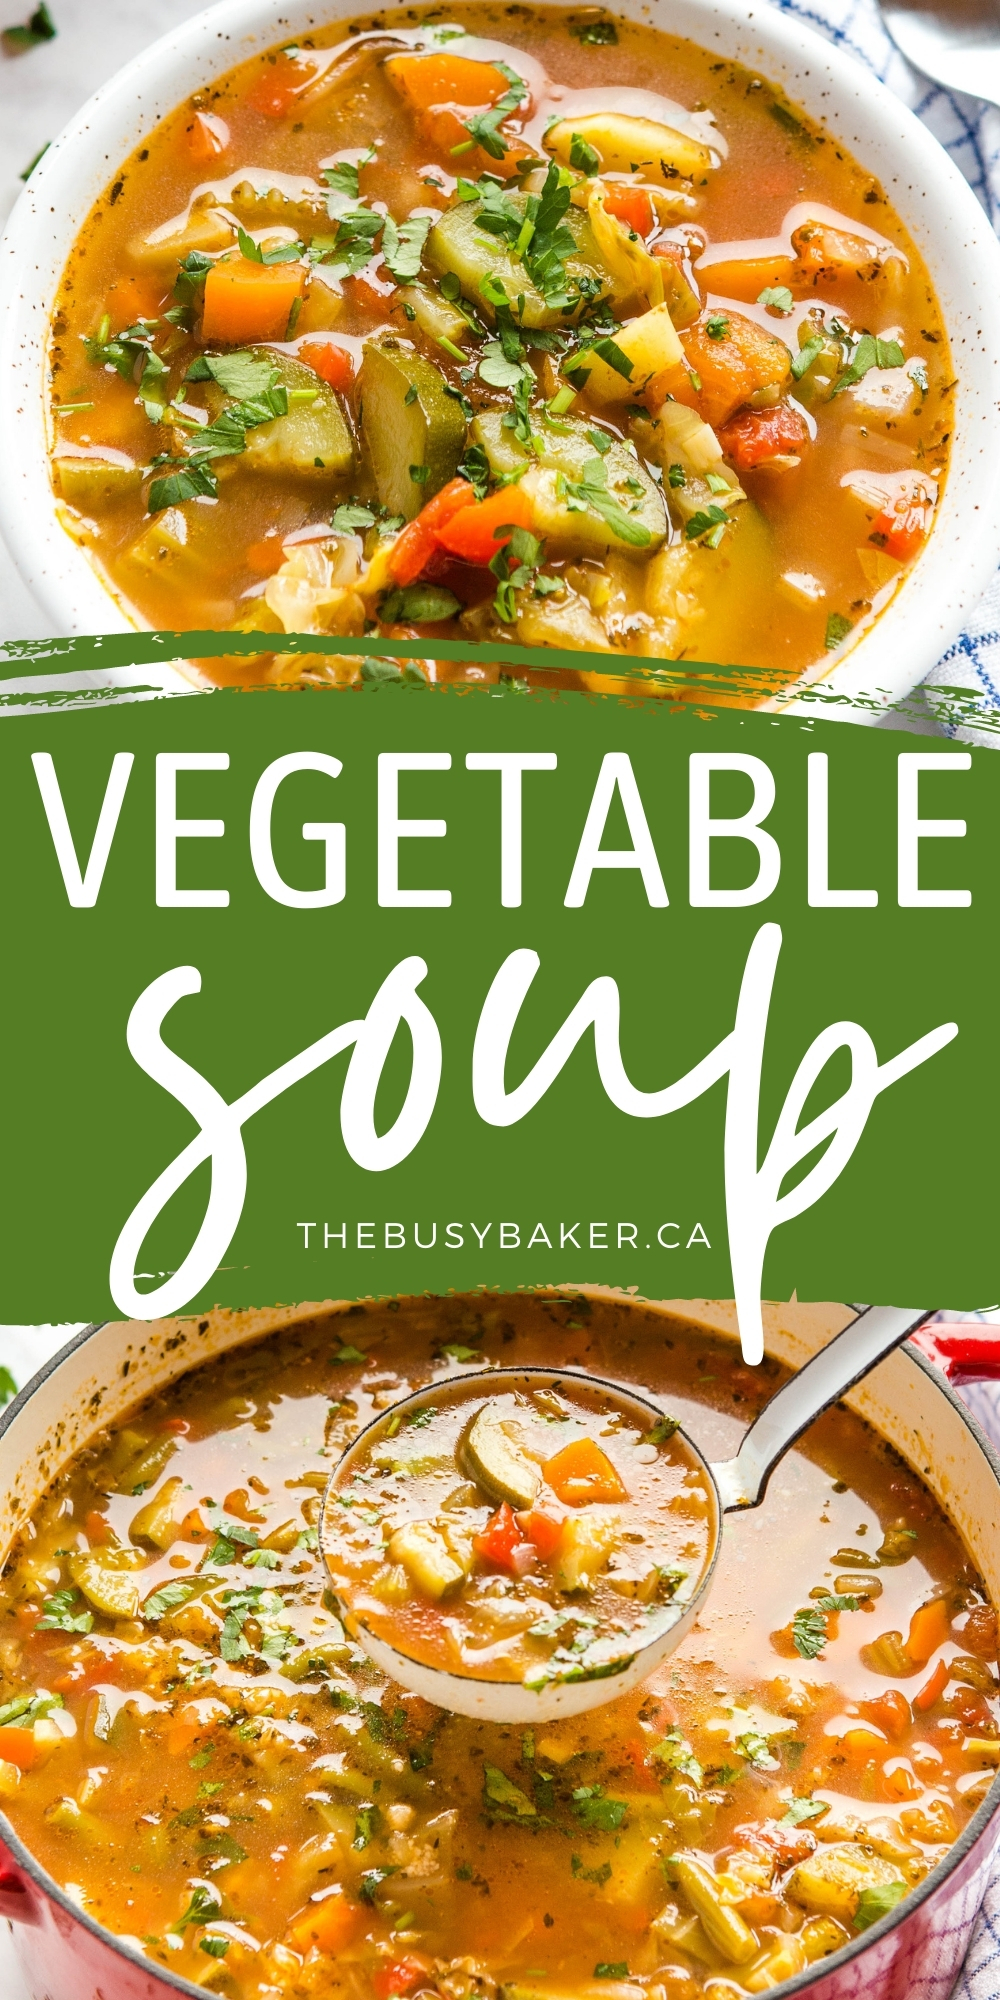 This Vegetable Soup is the perfect veggie-packed healthy meal! Made with fresh or frozen vegetables, vegan and plant-based, and only 80 calories per serving! Recipe from thebusybaker.ca! #vegetablesoup #vegan #vegetarian #soup #homemade #homesteading #fromscratch #health #healthy #onepot #lowcarb #keto via @busybakerblog